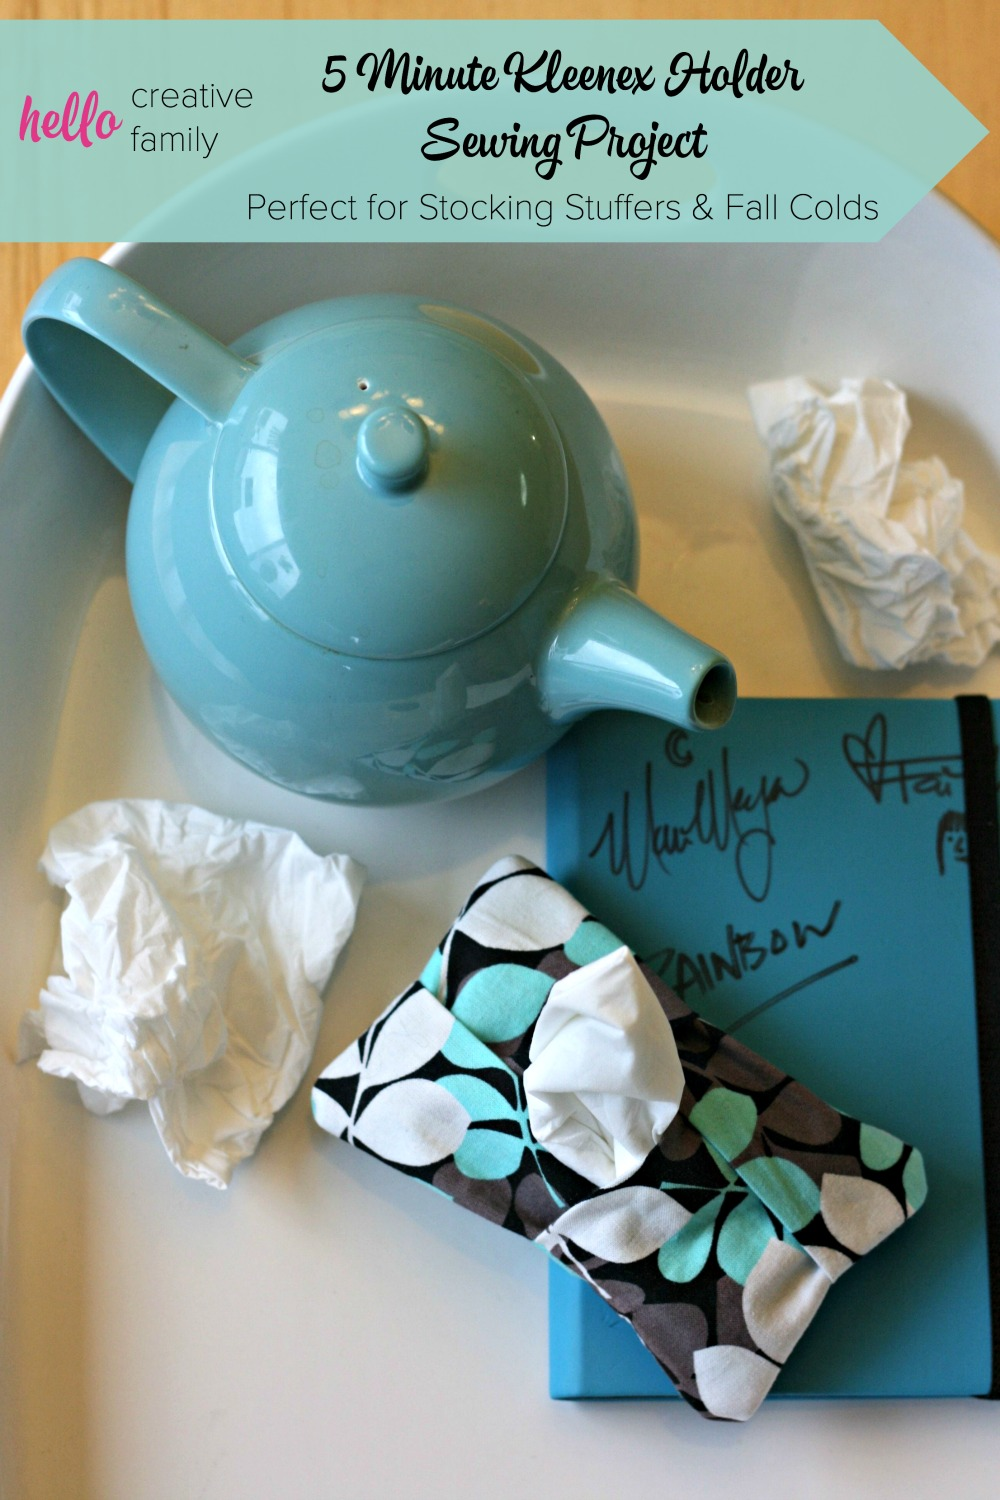 5 minute tissue holder sewing project would make a great teacher gift, stocking stuffer or handmade gift idea. A great fabric scrap project for cold & flu season.